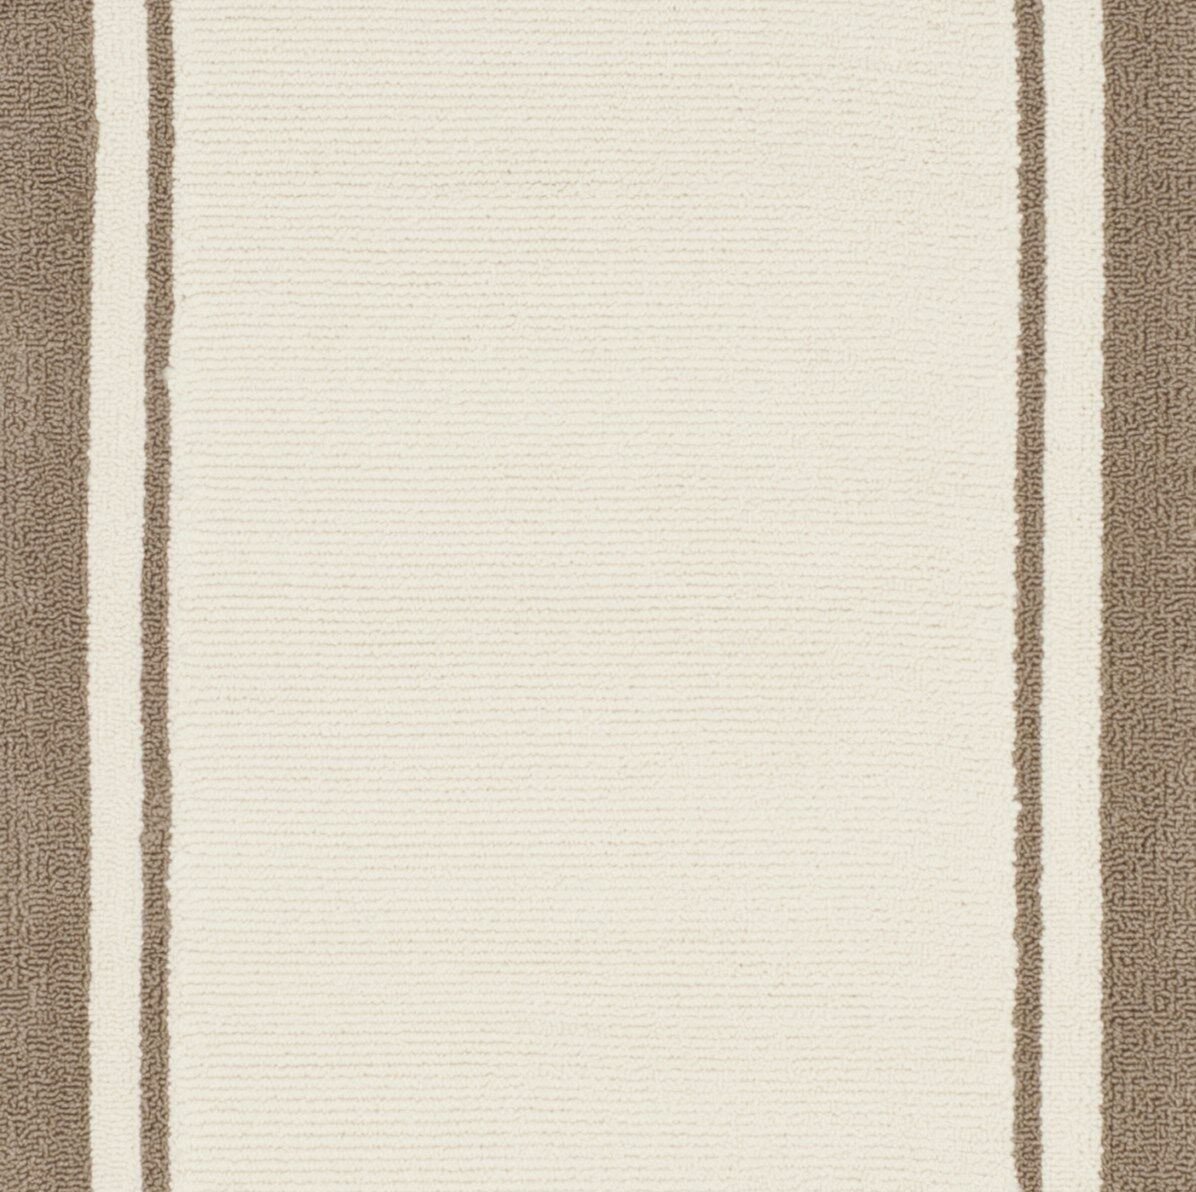 Asher Hand-Made Off Beige/Brown Area Rug Rug Size: Rectangle 9' x 12'